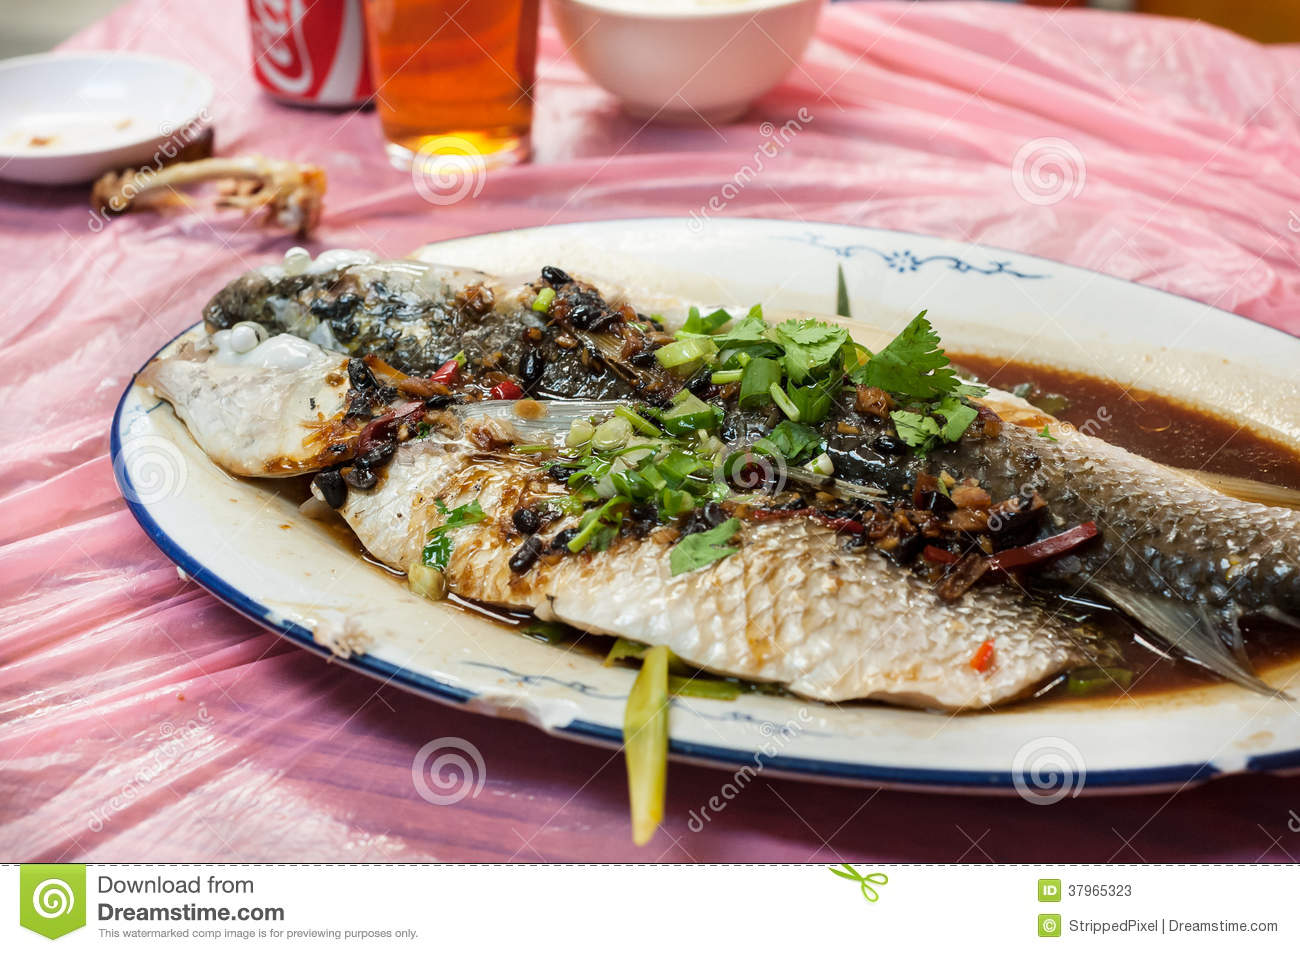 ... . Here, a fresh steamed fish is served with black bean and soy sauce